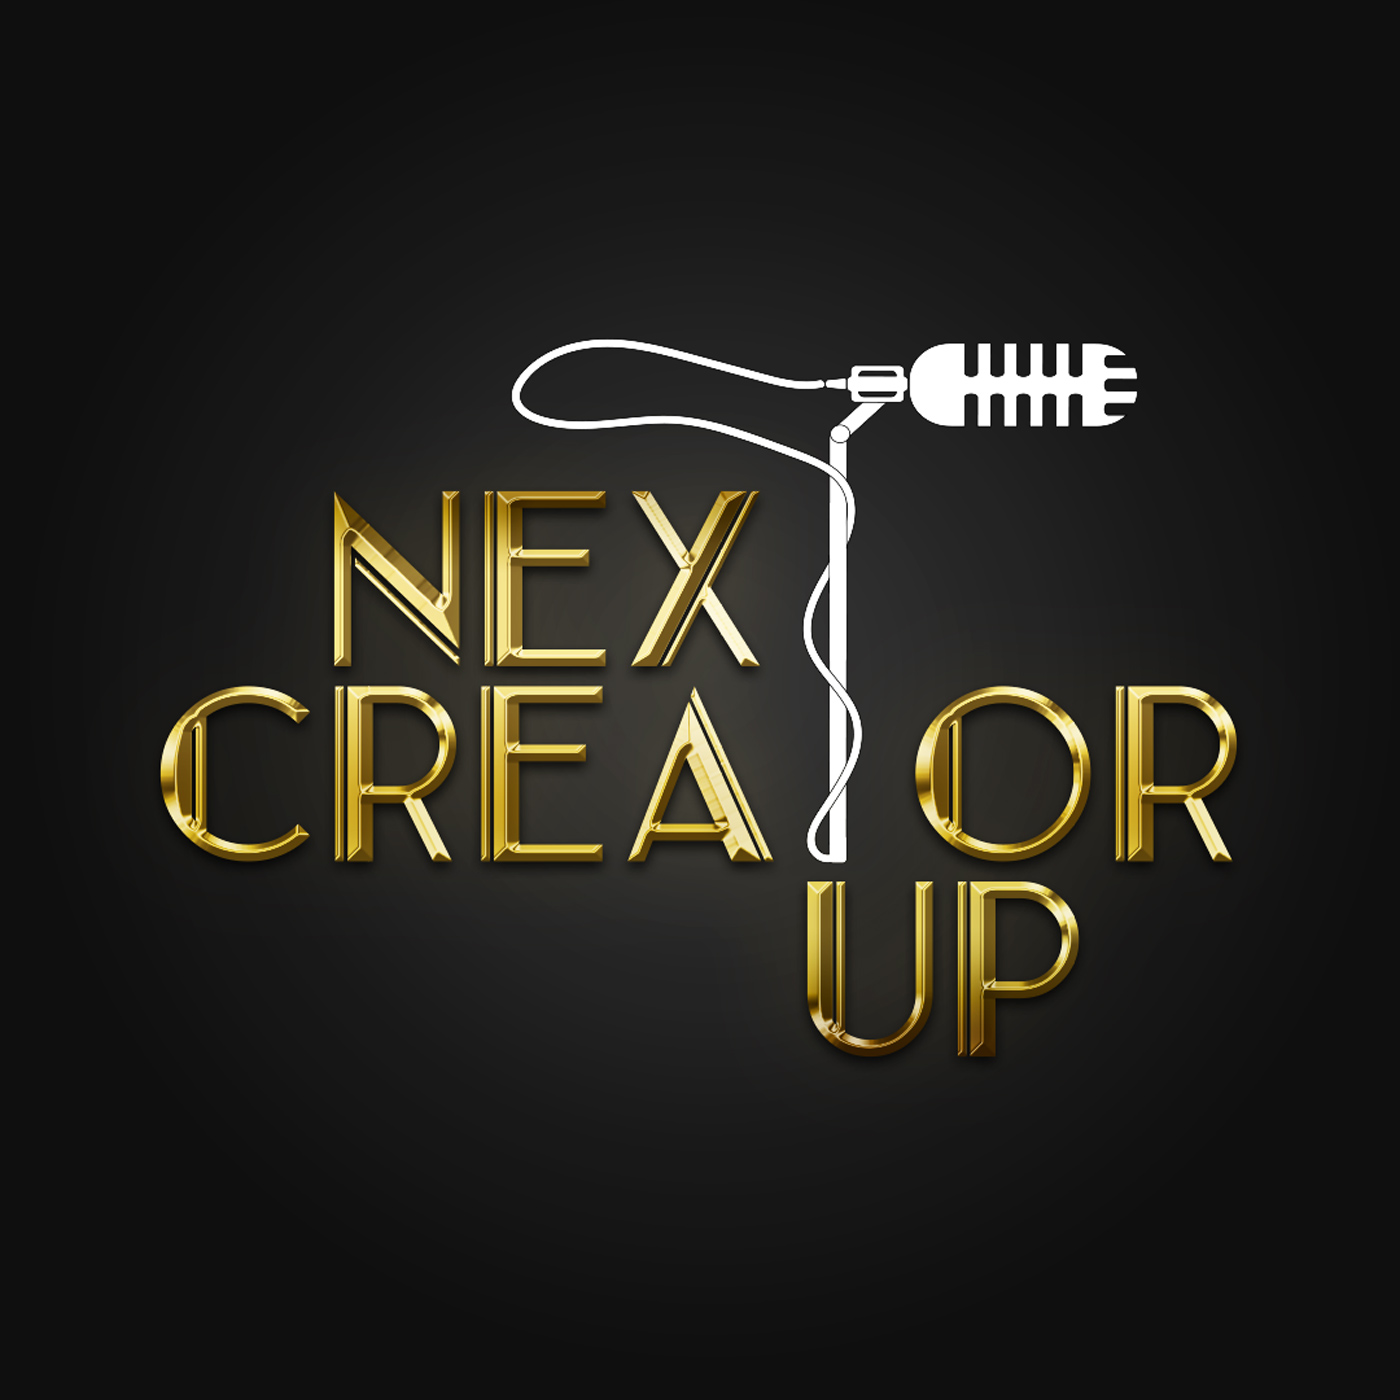 Next Creator Up